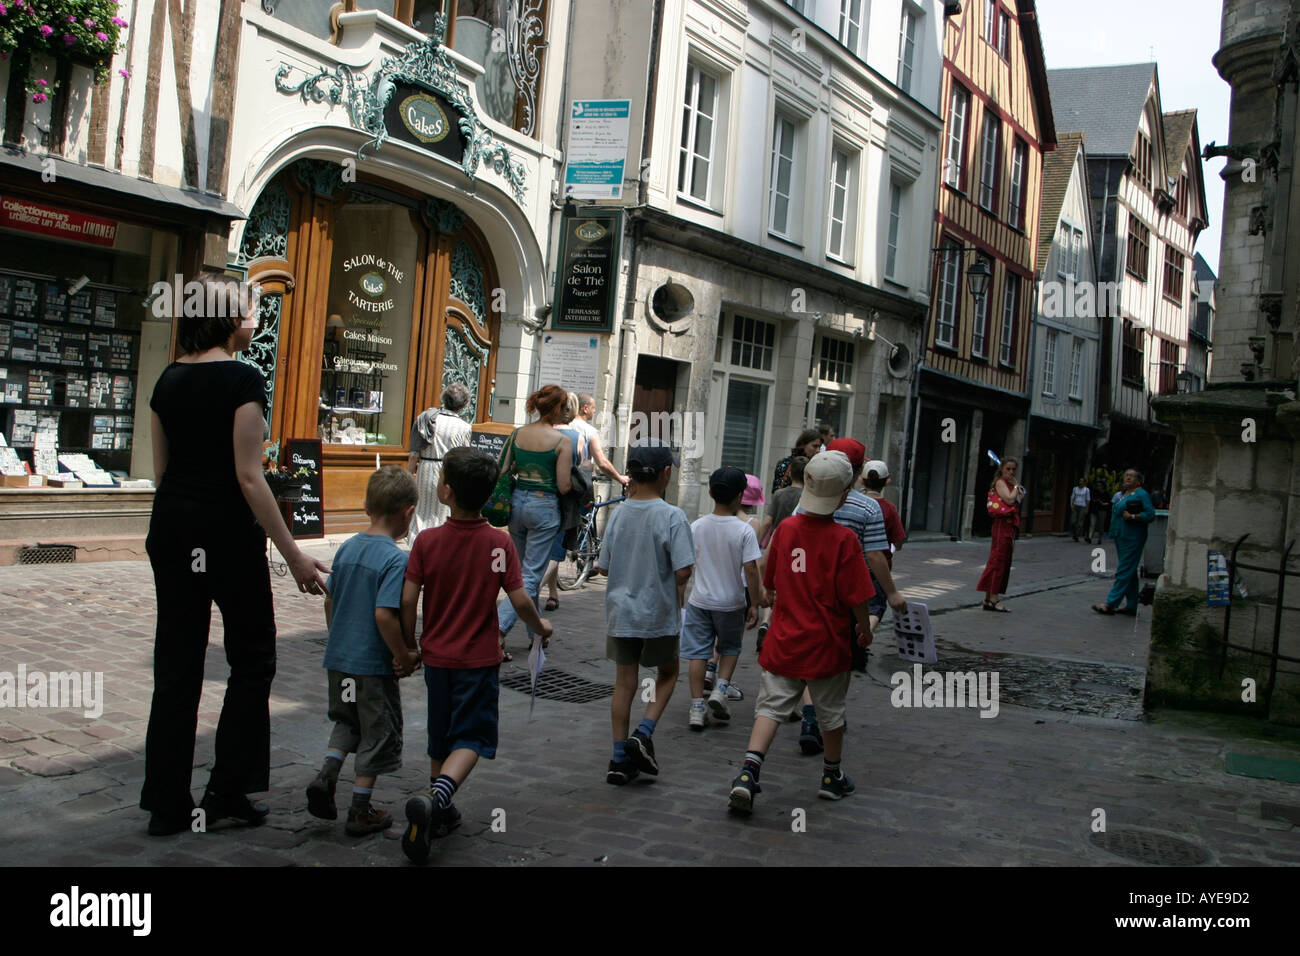 French schooltrip in the old streets of Rouen France Stock Photo